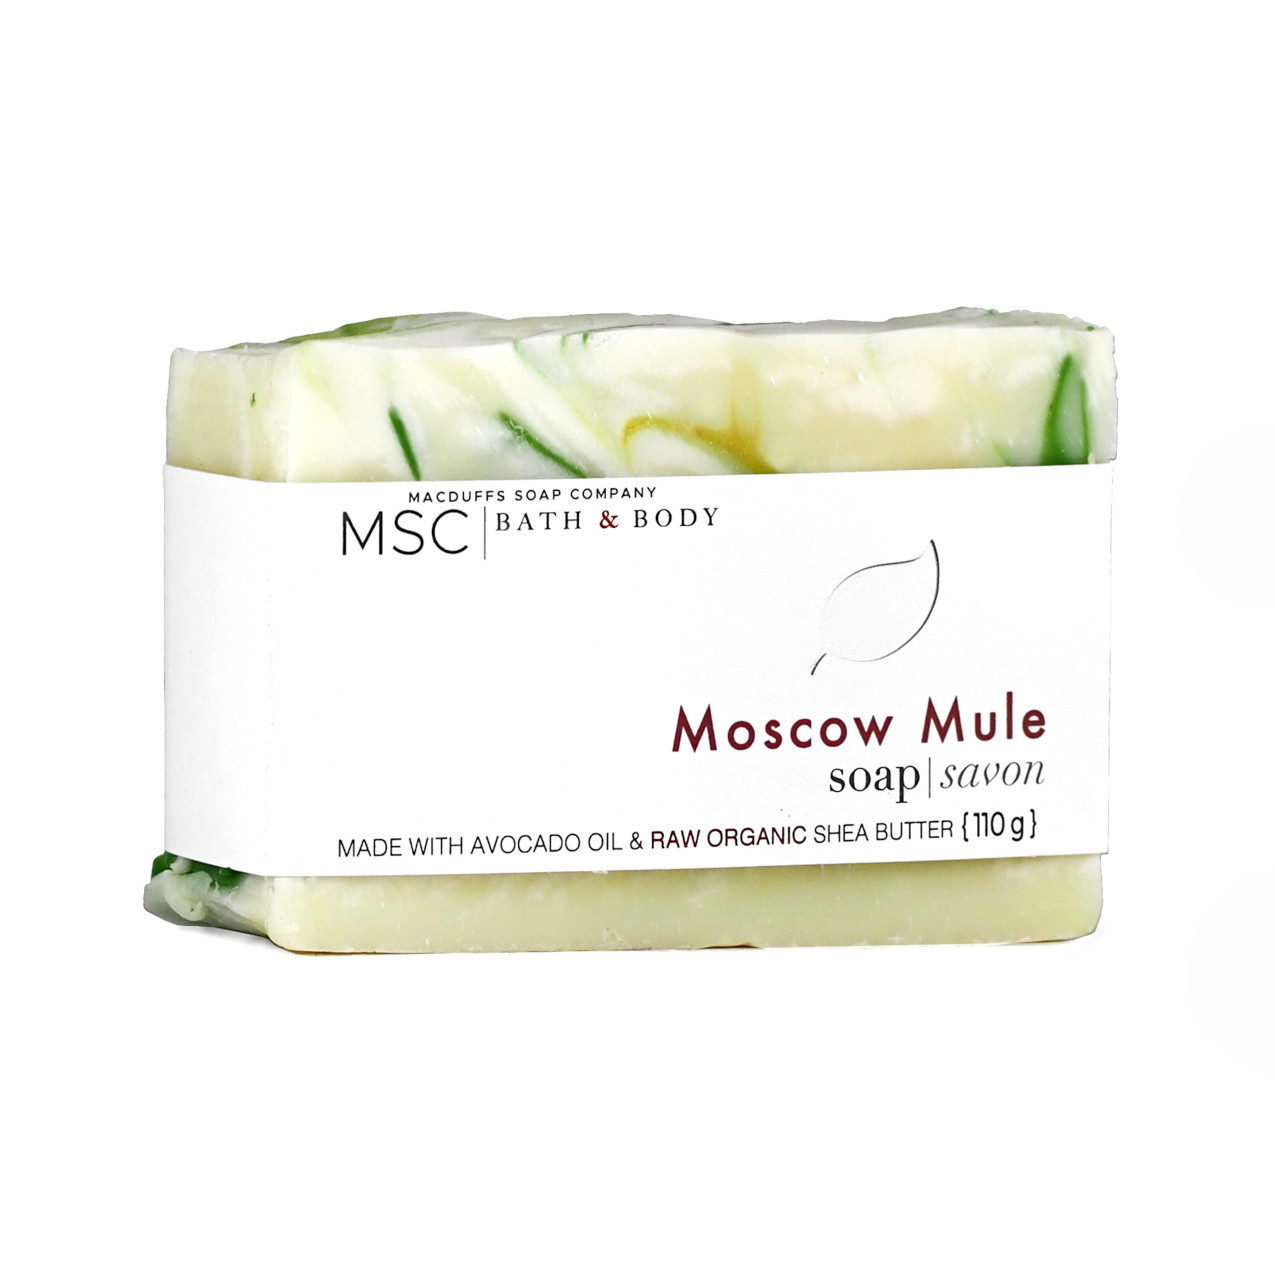 Moscow Mule Bar Soap